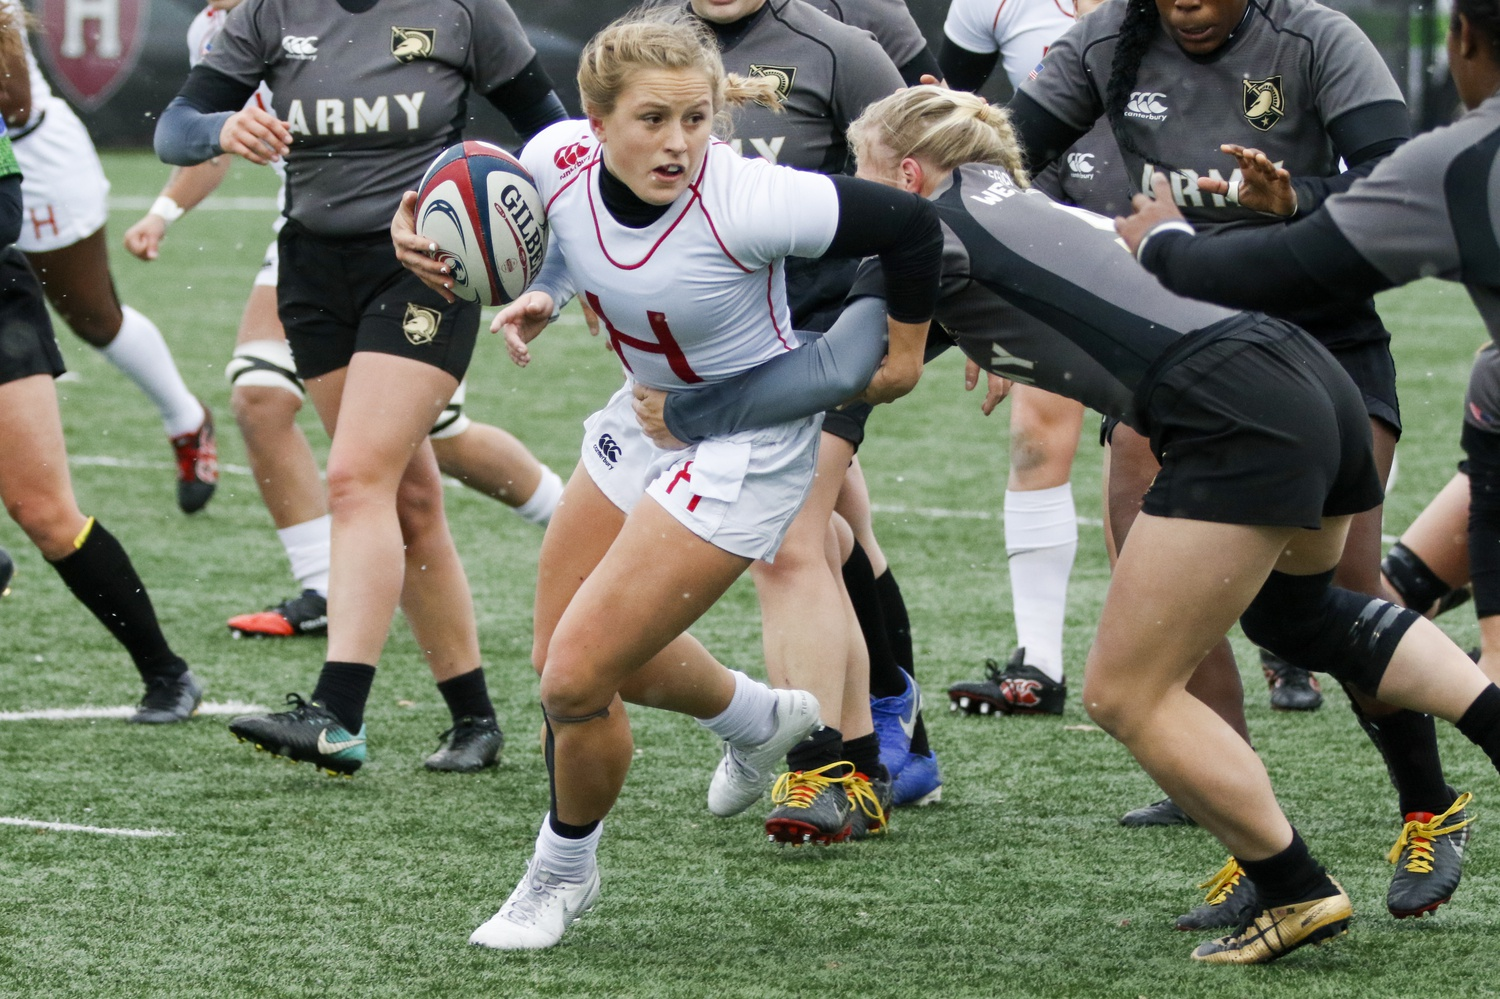 Sophomore Cassidy Bargell looks to elude the Black Knights' defender. In the game, while Army attempted to wrap up the Crimson, Harvard wrapped up the season in victory: with a national championship.